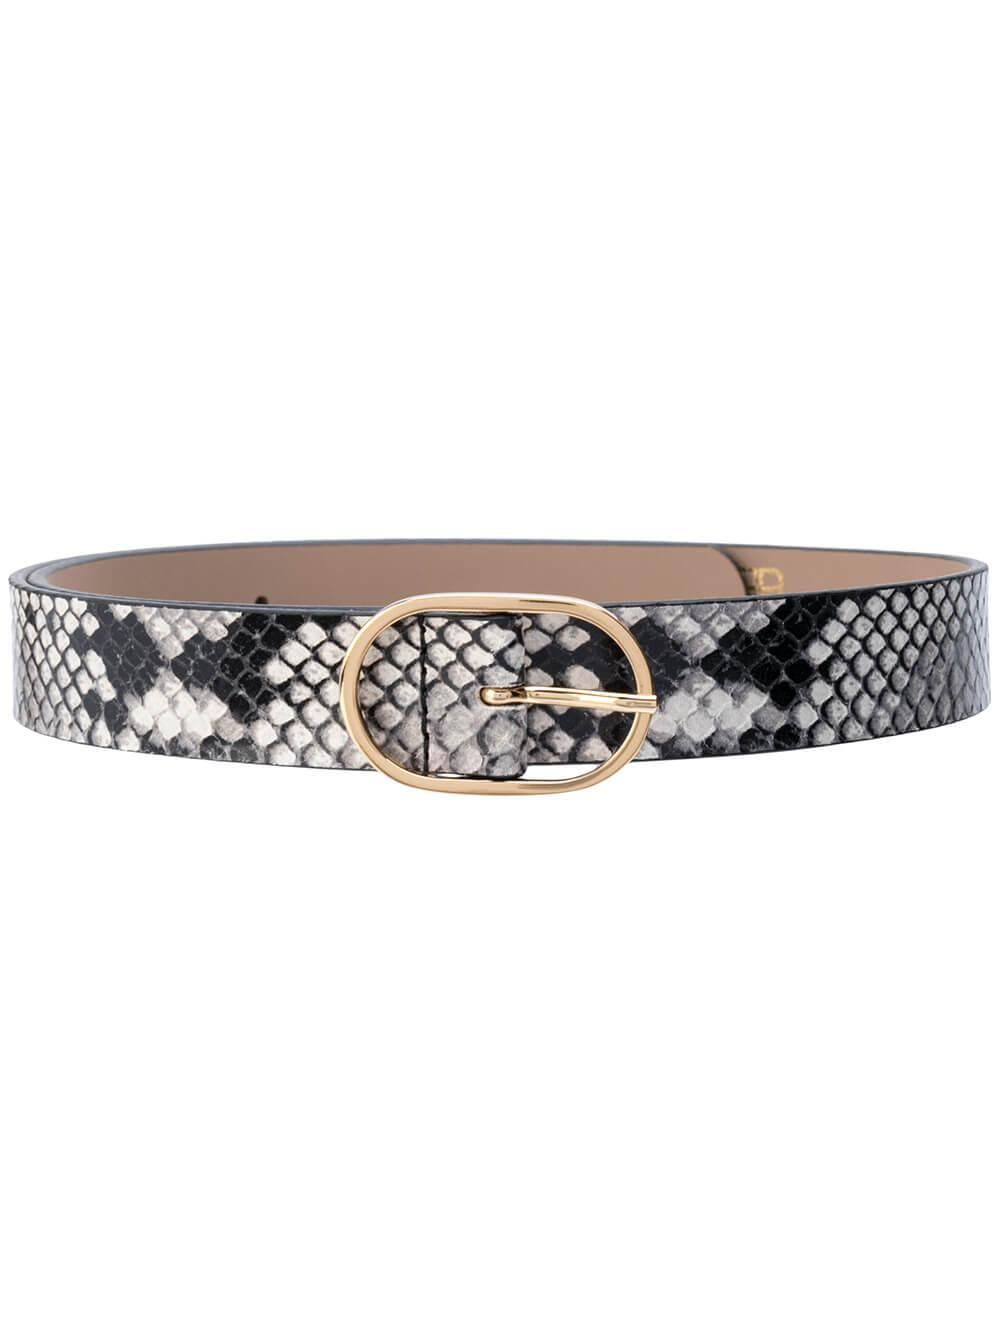 Emmie Mini Python Waist Belt Item # BW518-700LE